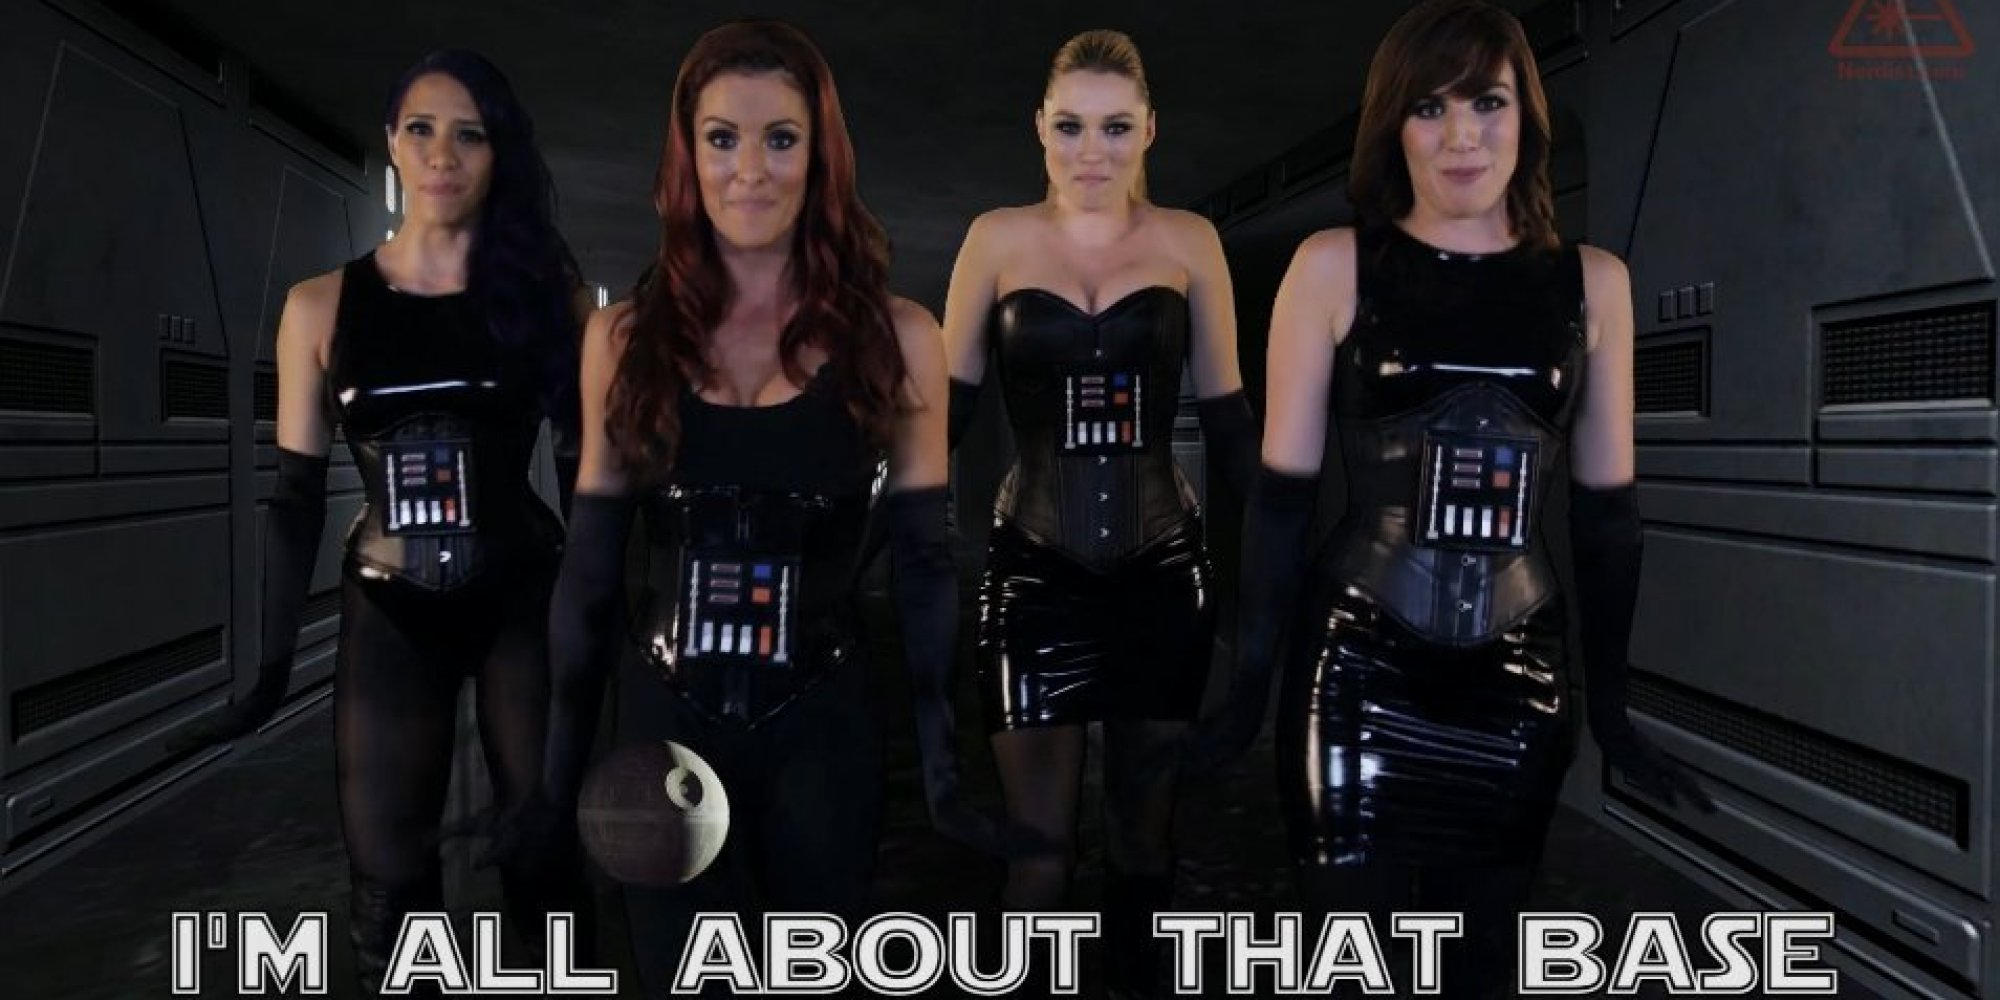 'All About That Bass' Gets A 'Star Wars' Parody That's A